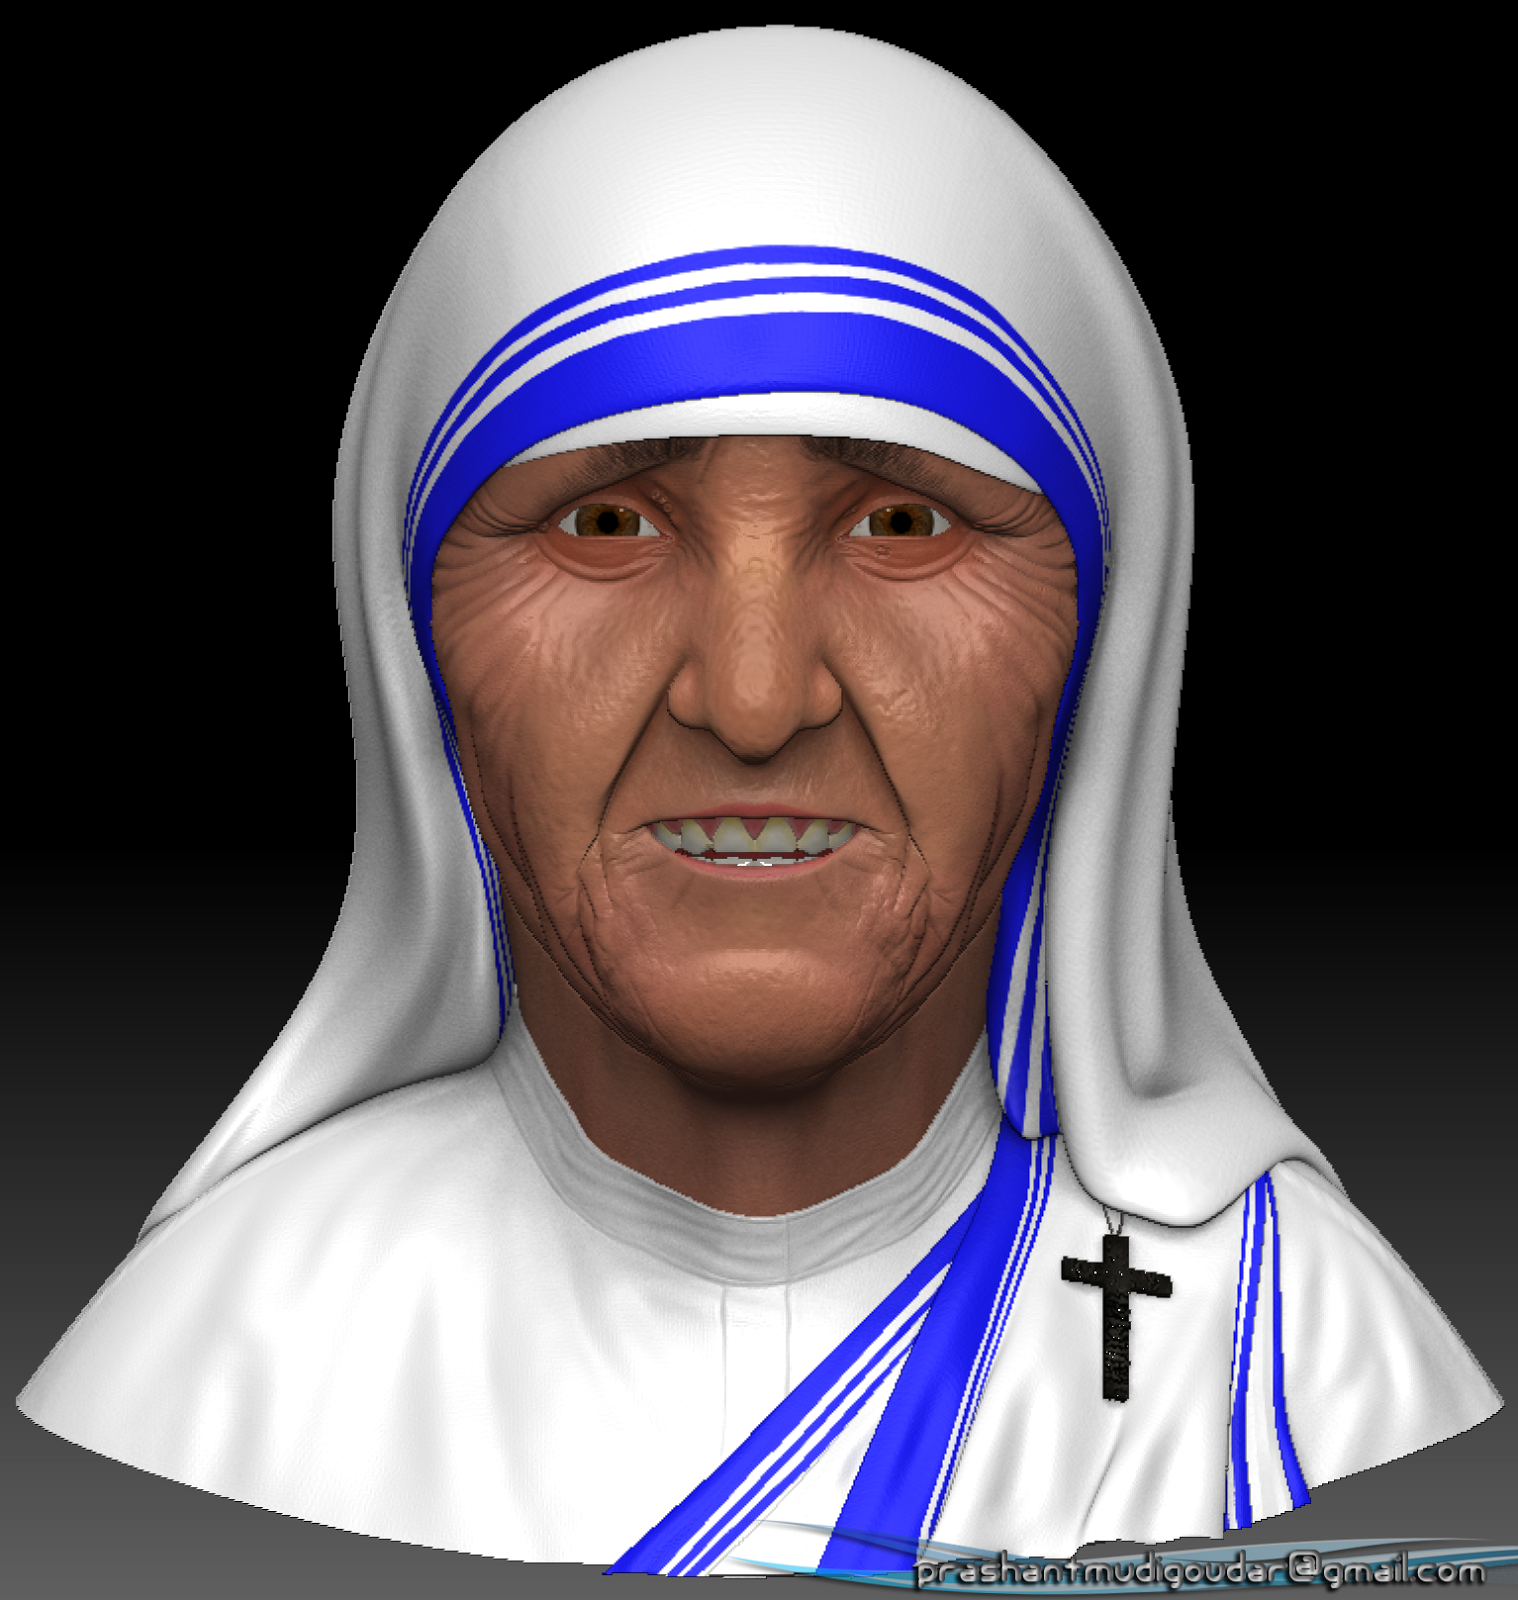 mother teresa emma johnson When mary johnson left mother teresa and the missionaries of charity after 20 years of service, she had to learn to pump her own gasoline, to use a microwave and atm, and to make her own decisions.